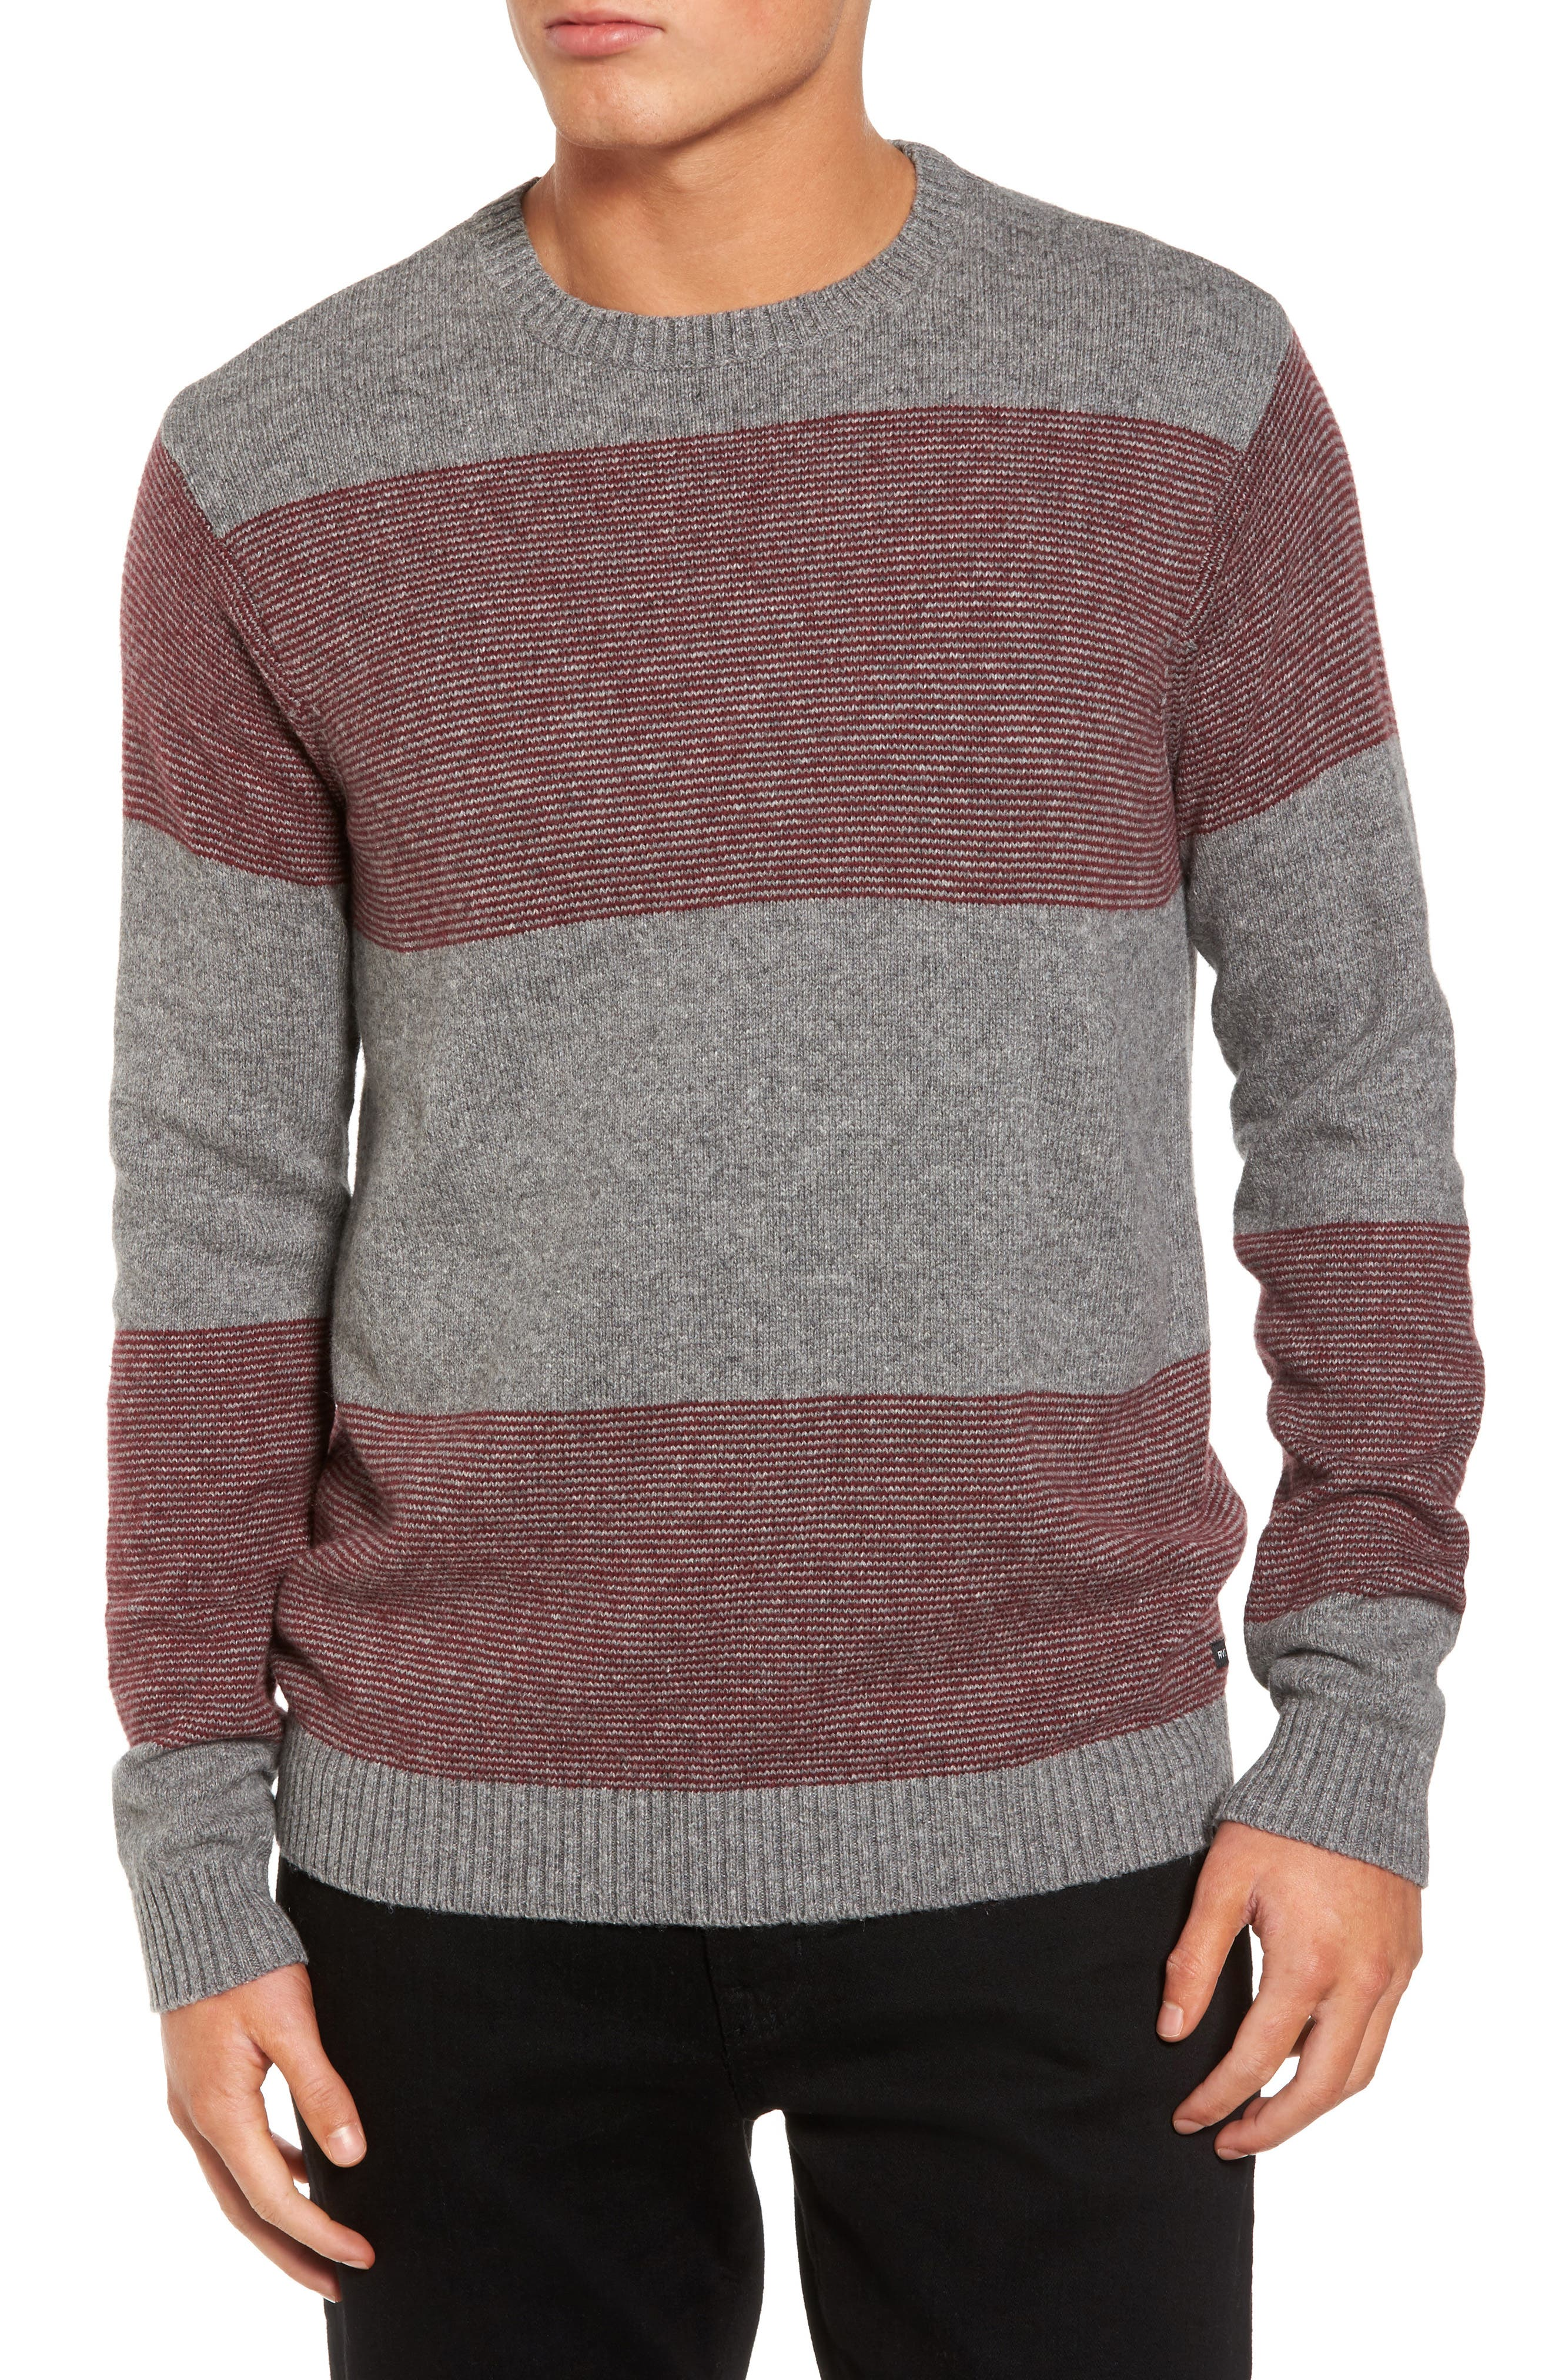 Channels Crewneck Sweater,                         Main,                         color, Athletic Heather